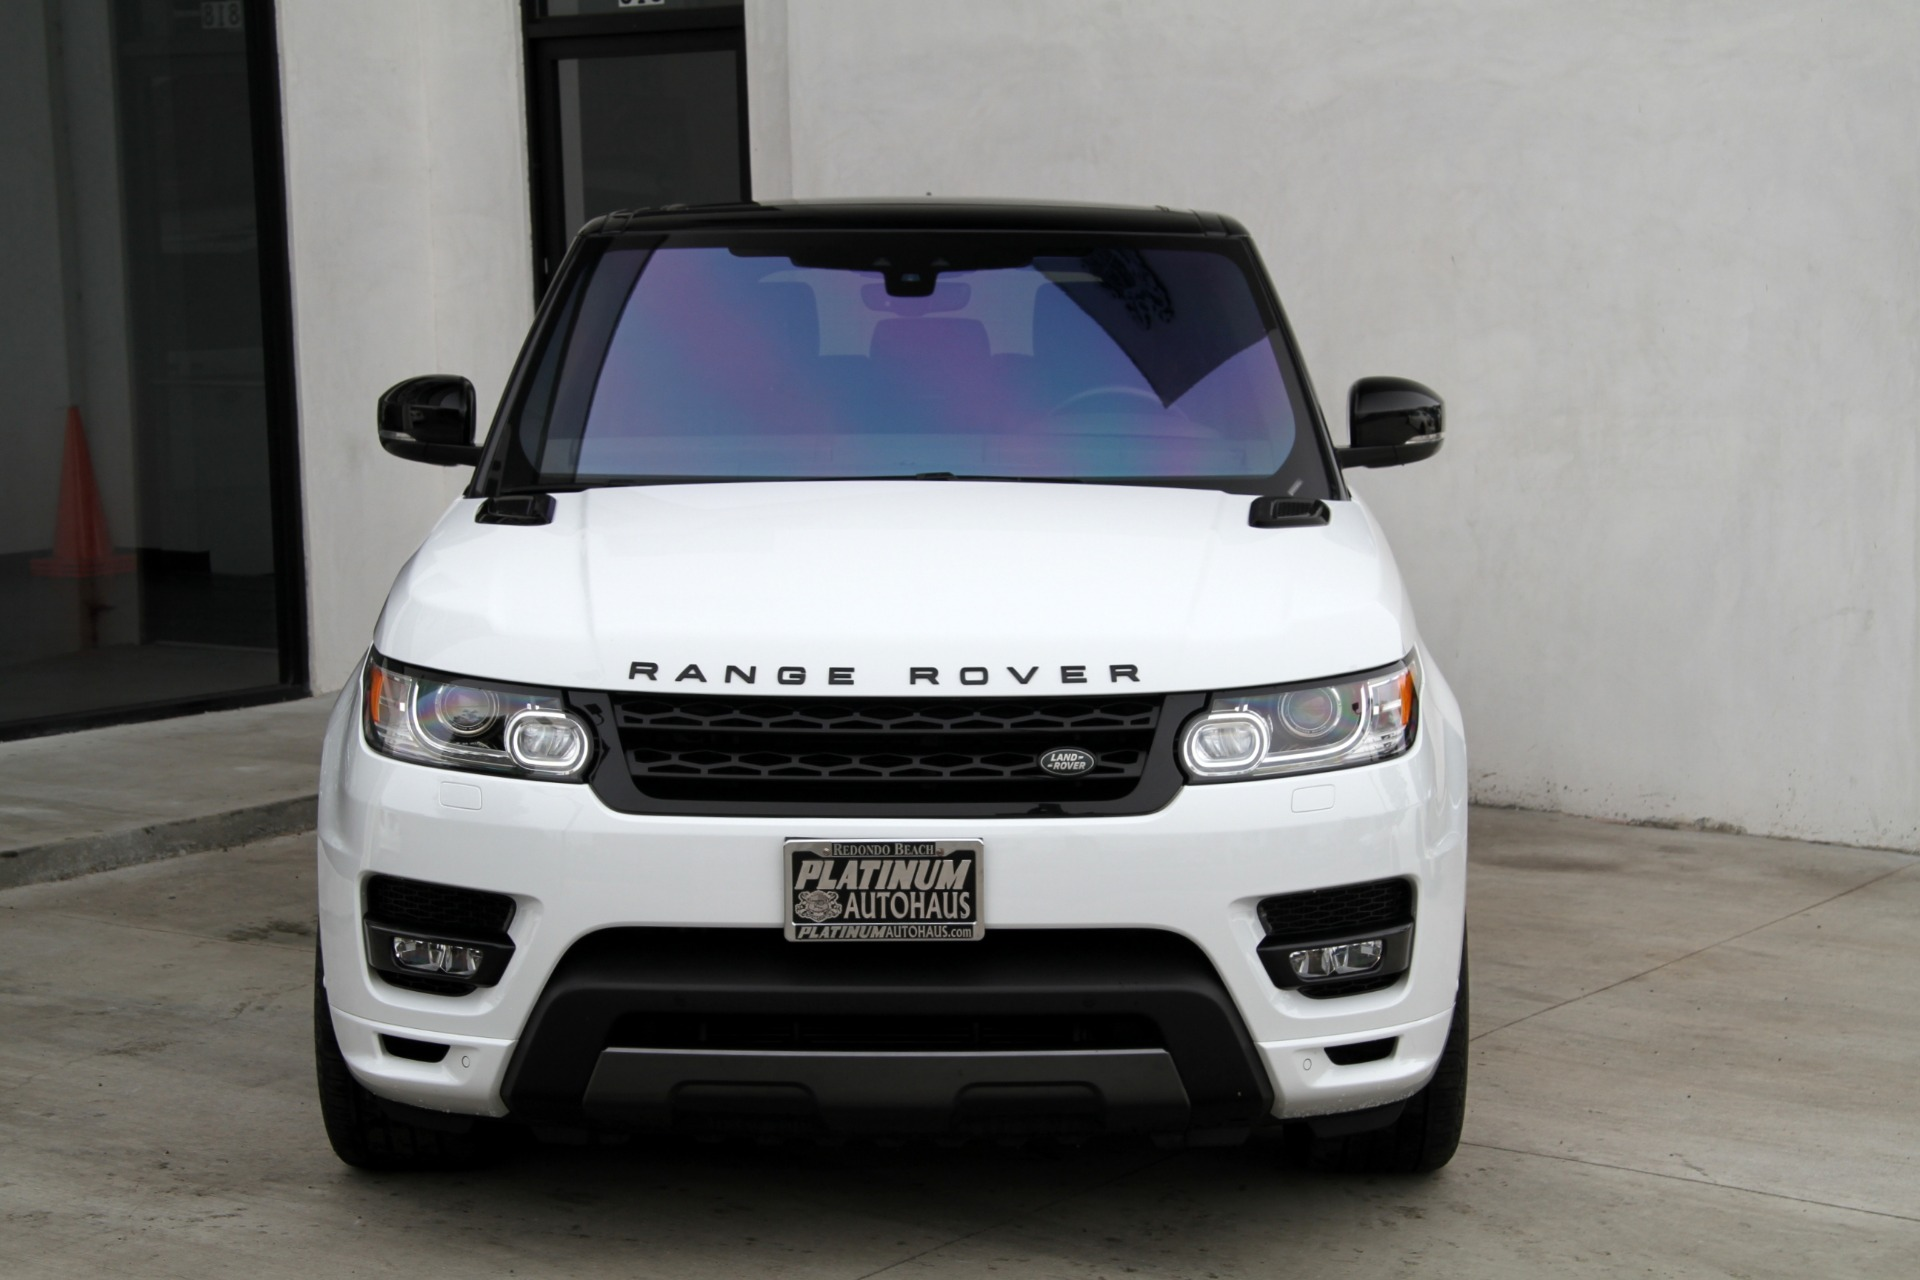 Land Rover For Sale Near Me >> 2017 Land Rover Range Rover Sport HSE Dynamic Stock # 6293 for sale near Redondo Beach, CA | CA ...